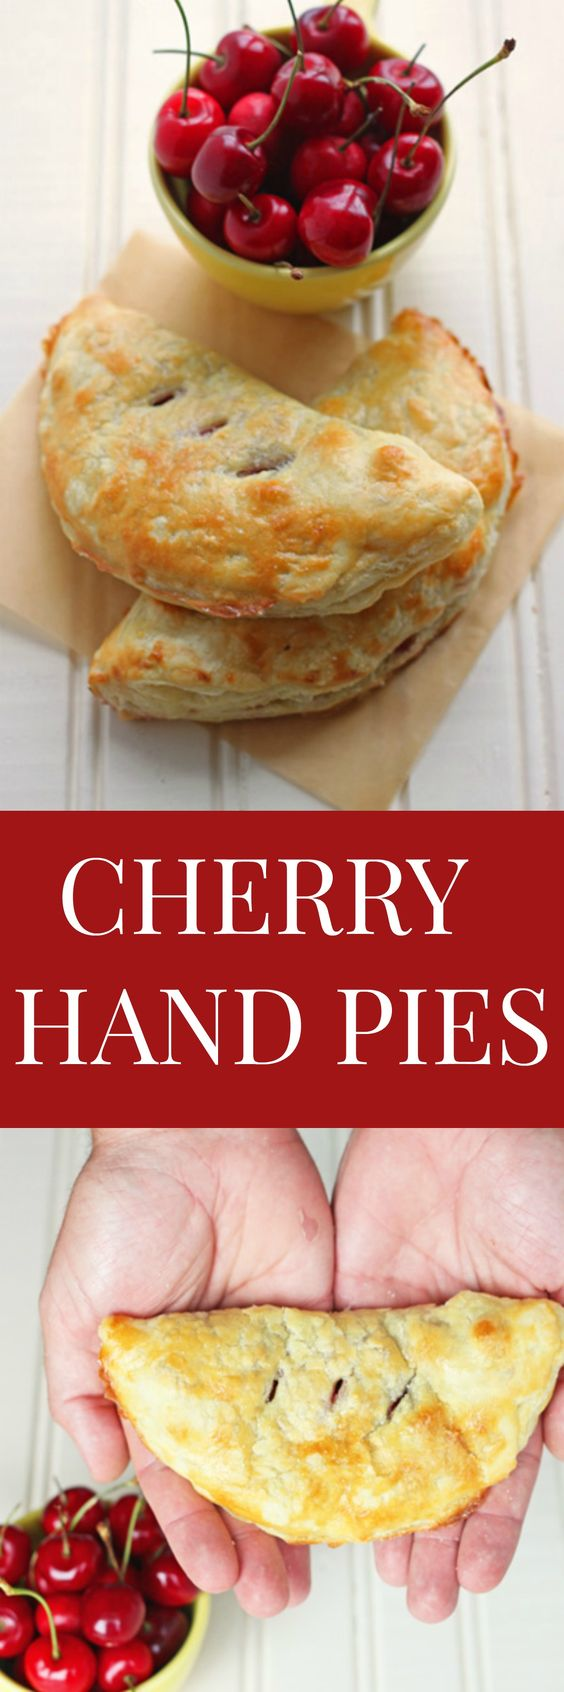 Hand pies, Cherry pie recipes and Cherry pies on Pinterest